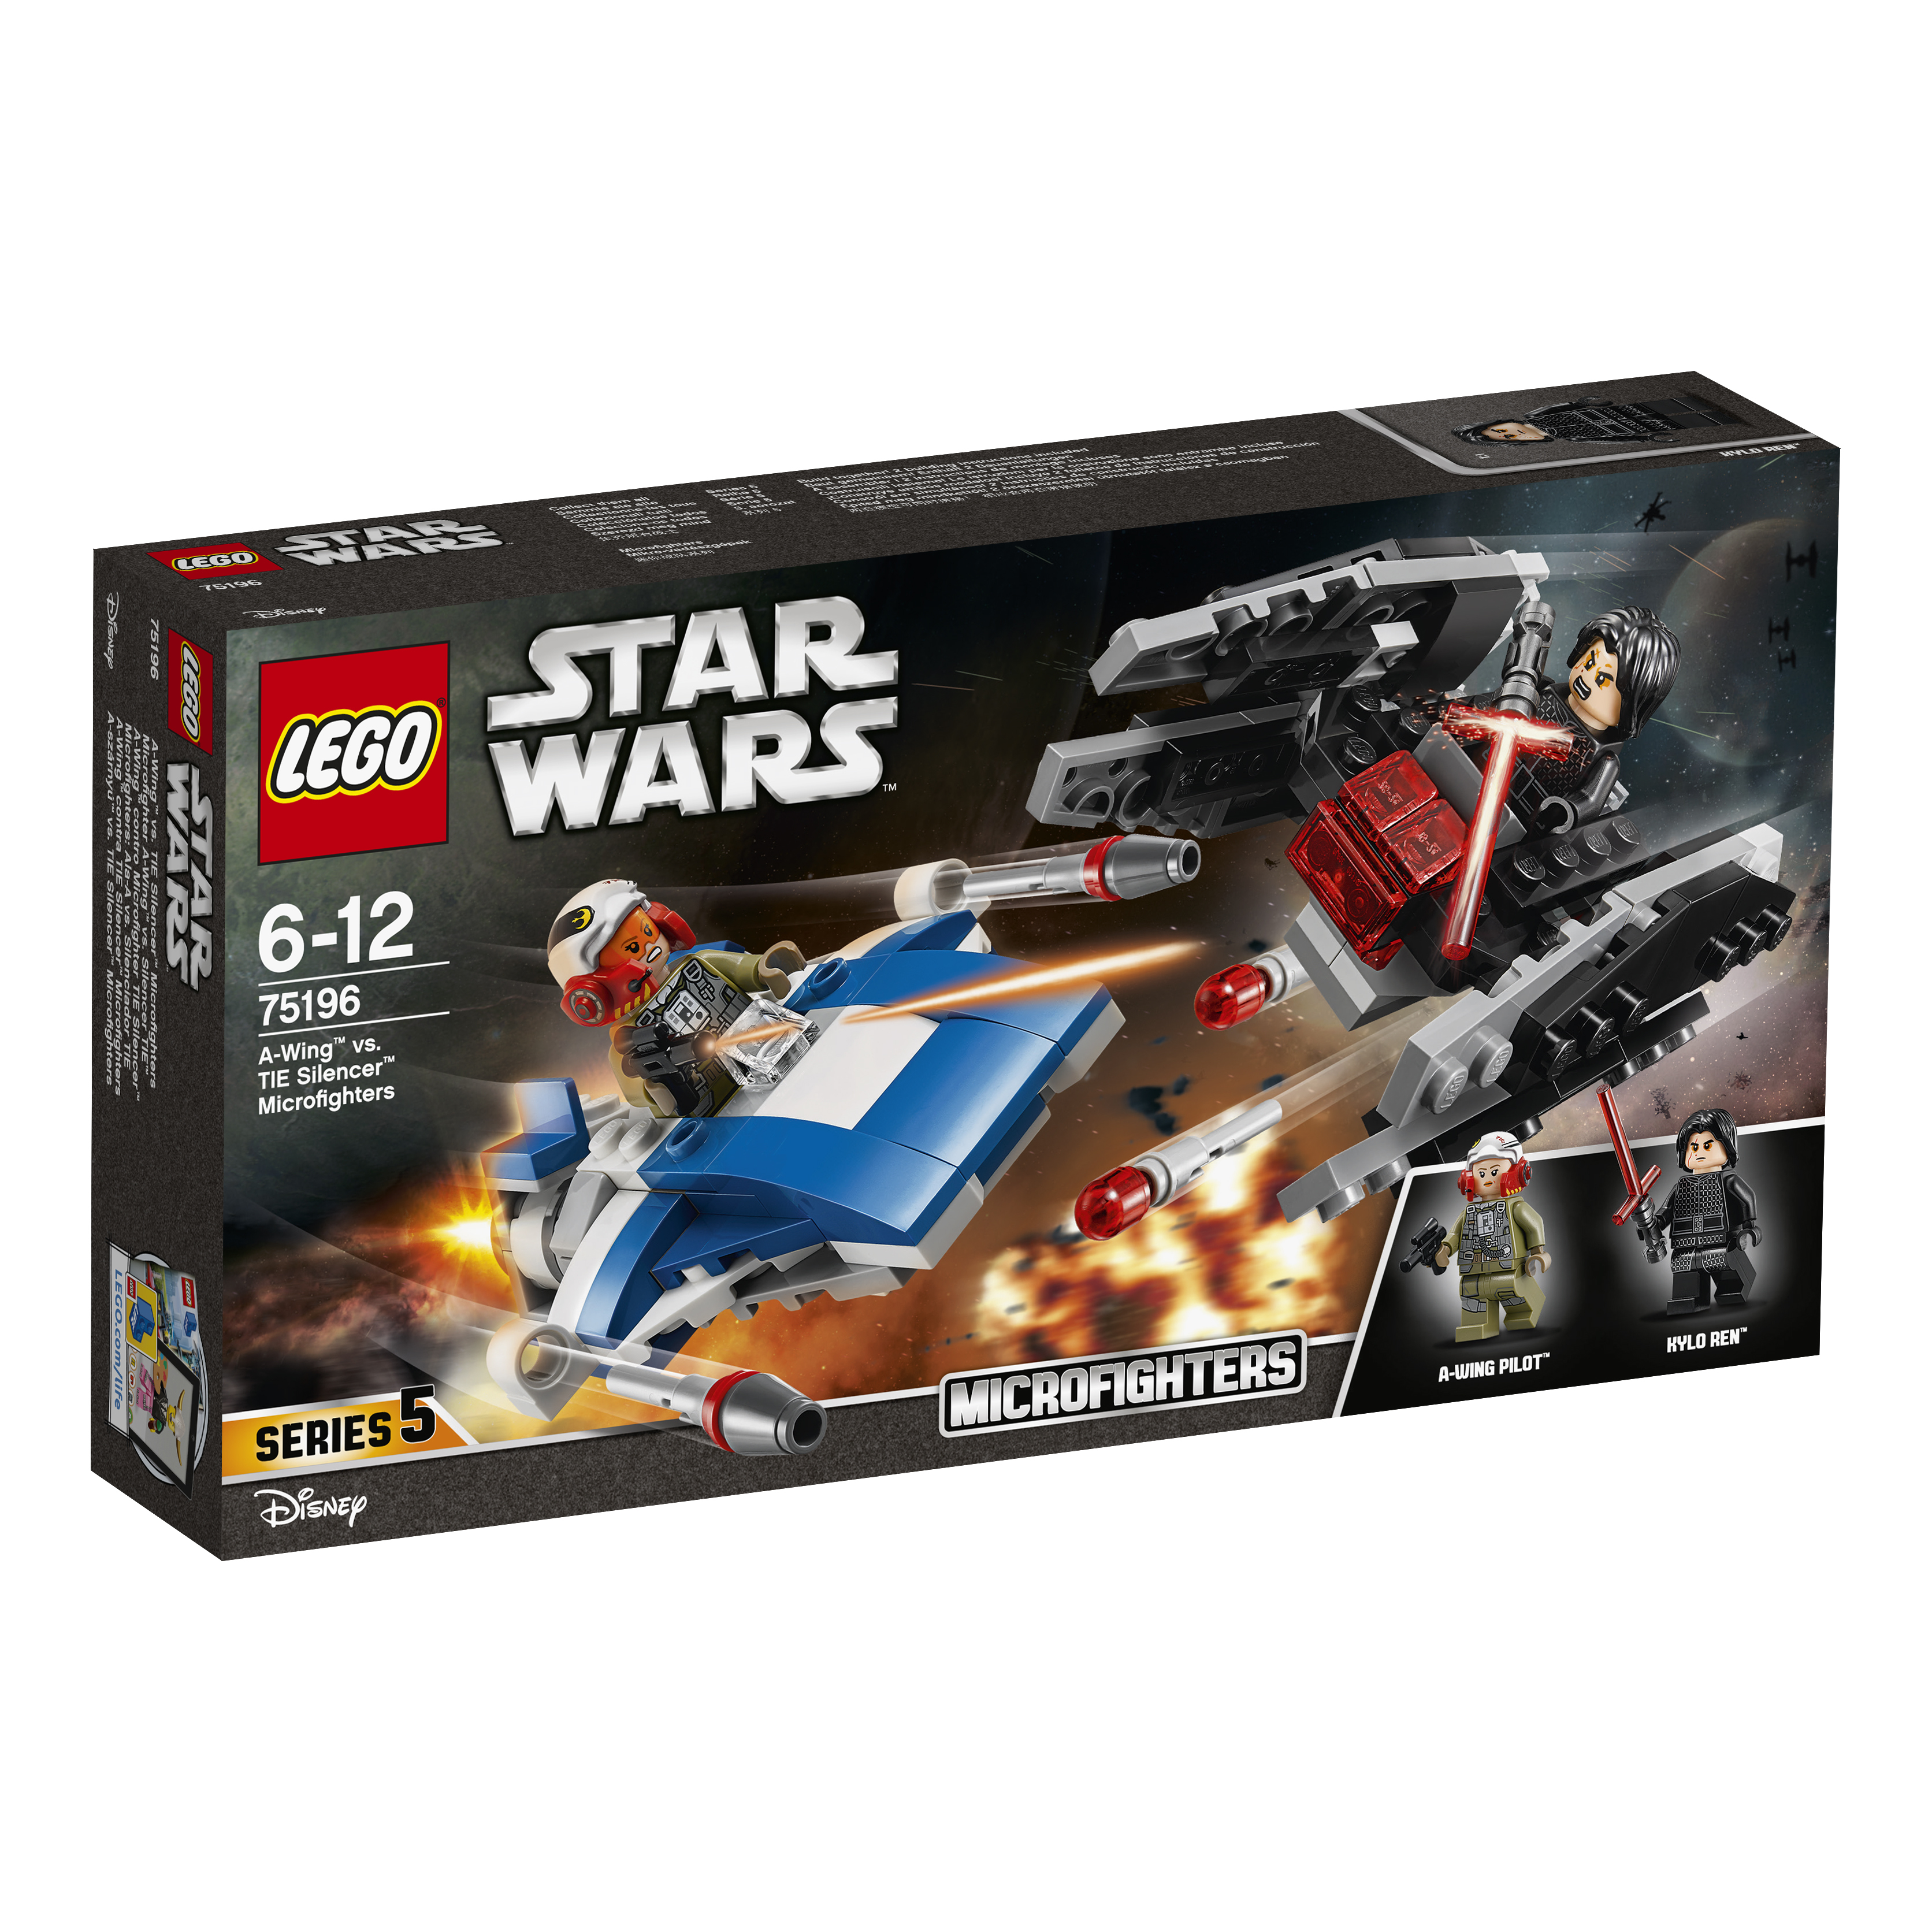 LEGO Star Wars A-wing vs. TIE Silencer microfighters - 75196